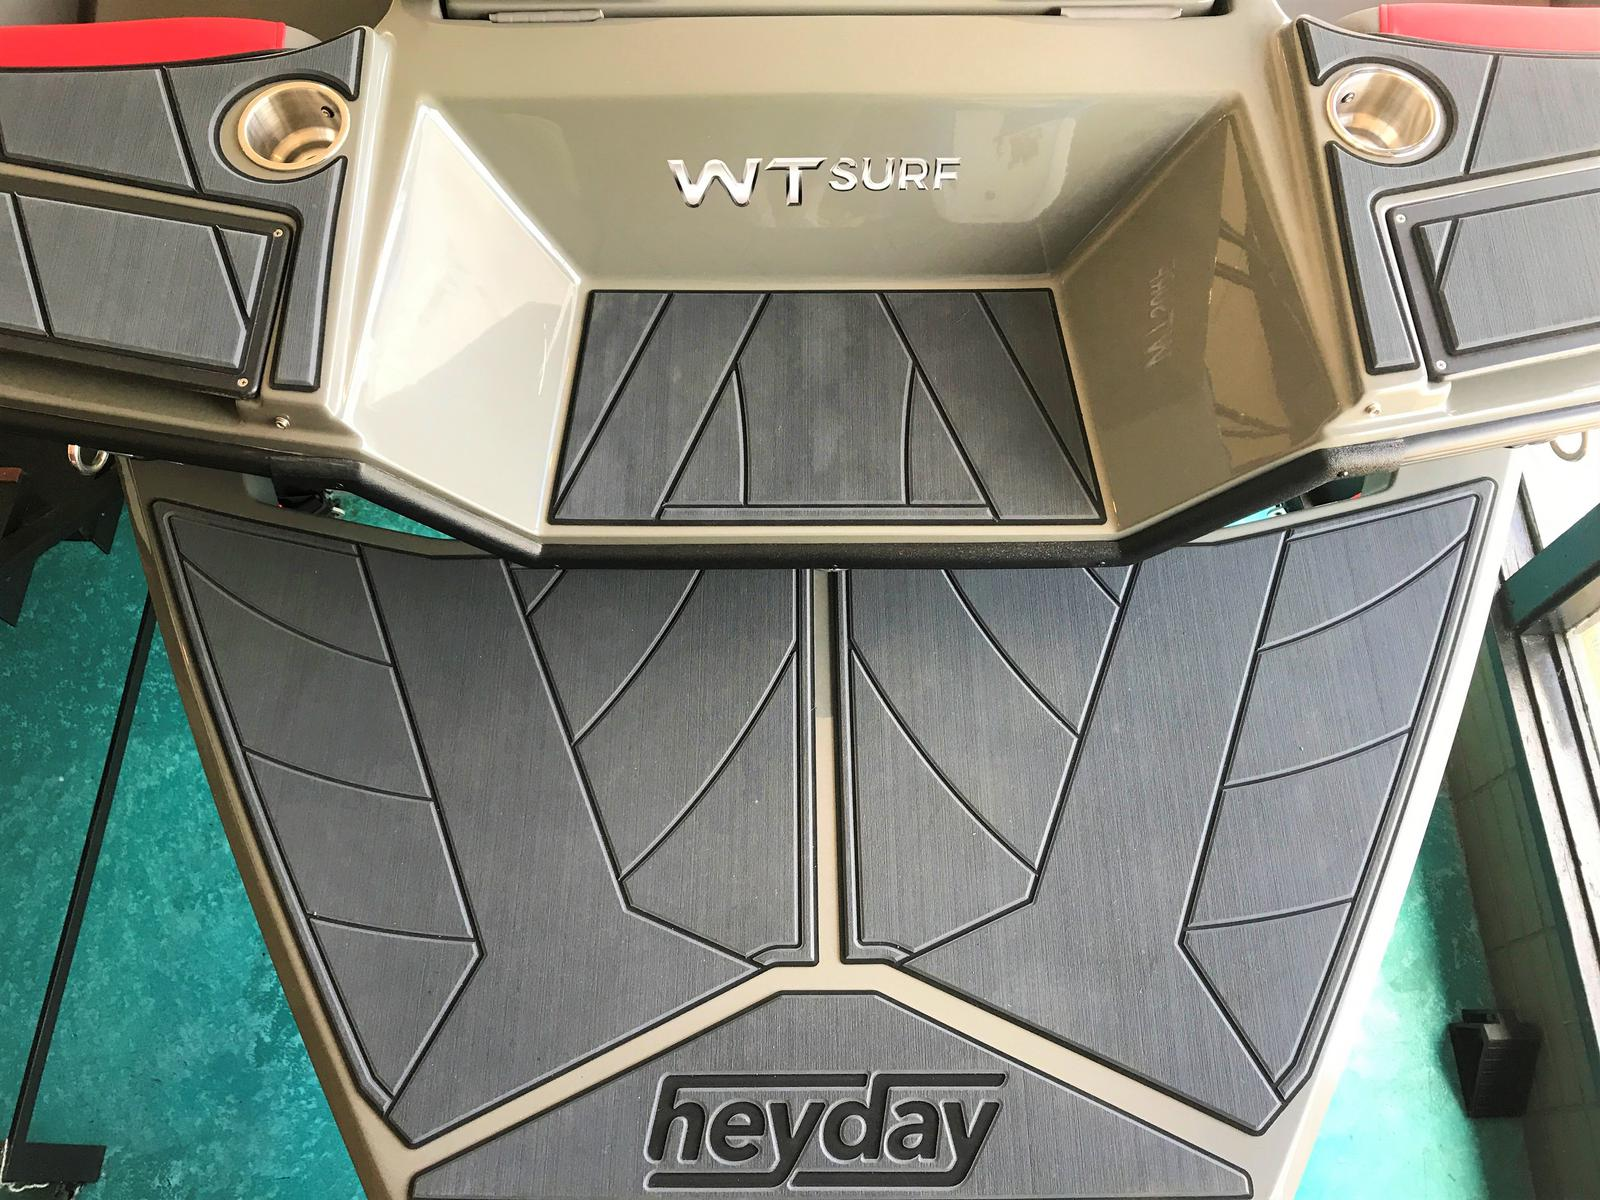 2019 Heyday boat for sale, model of the boat is WT Surf & Image # 2 of 5